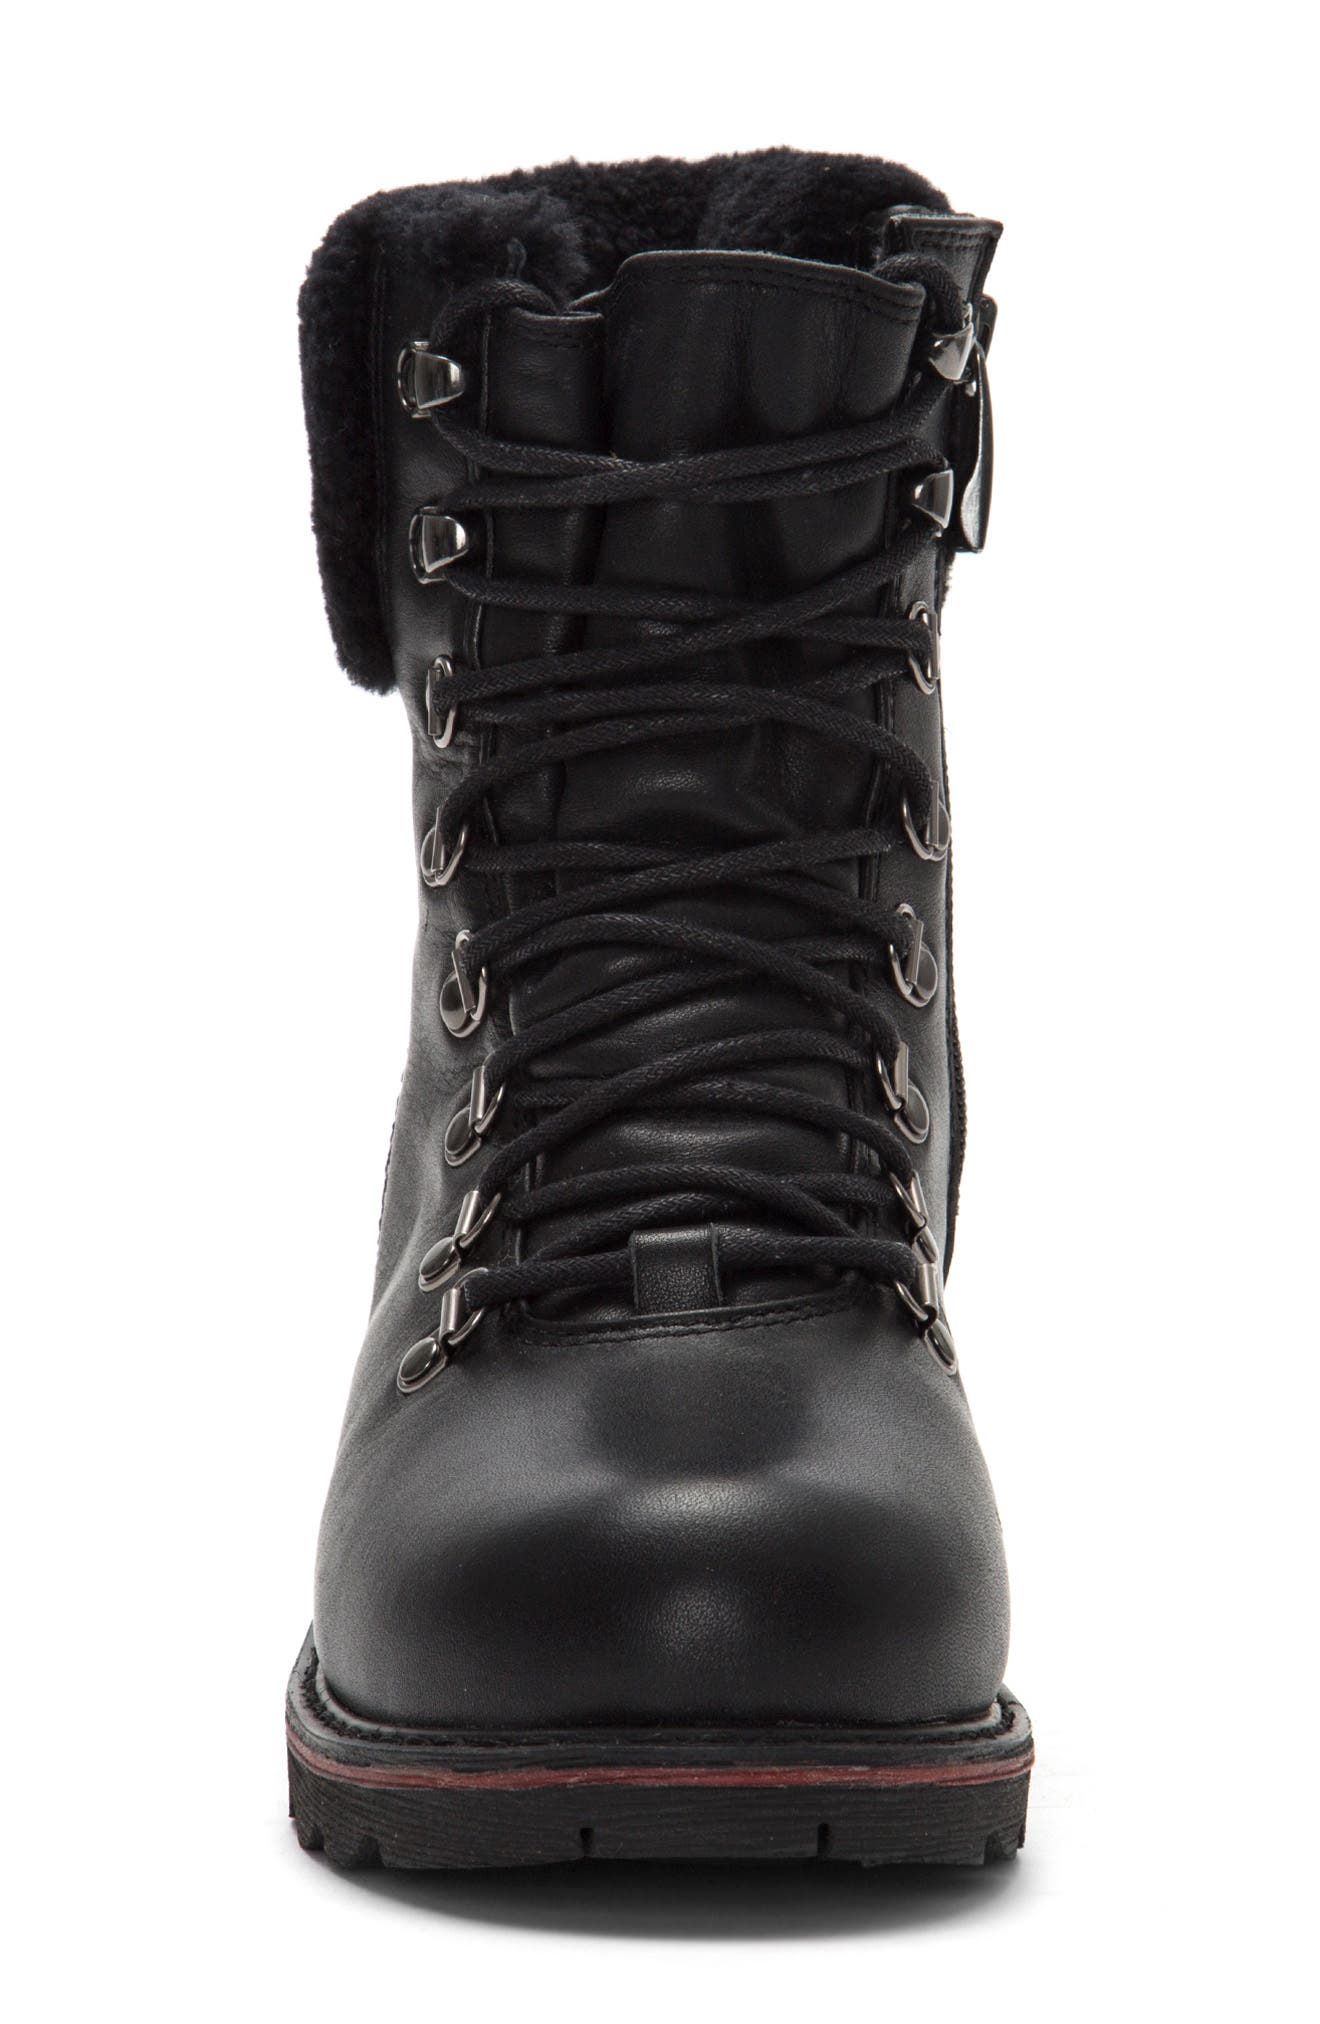 Lethbridge Waterproof Plain Toe Boot with Genuine Shearling,                             Alternate thumbnail 3, color,                             TRIPLE BLACK LEATHER